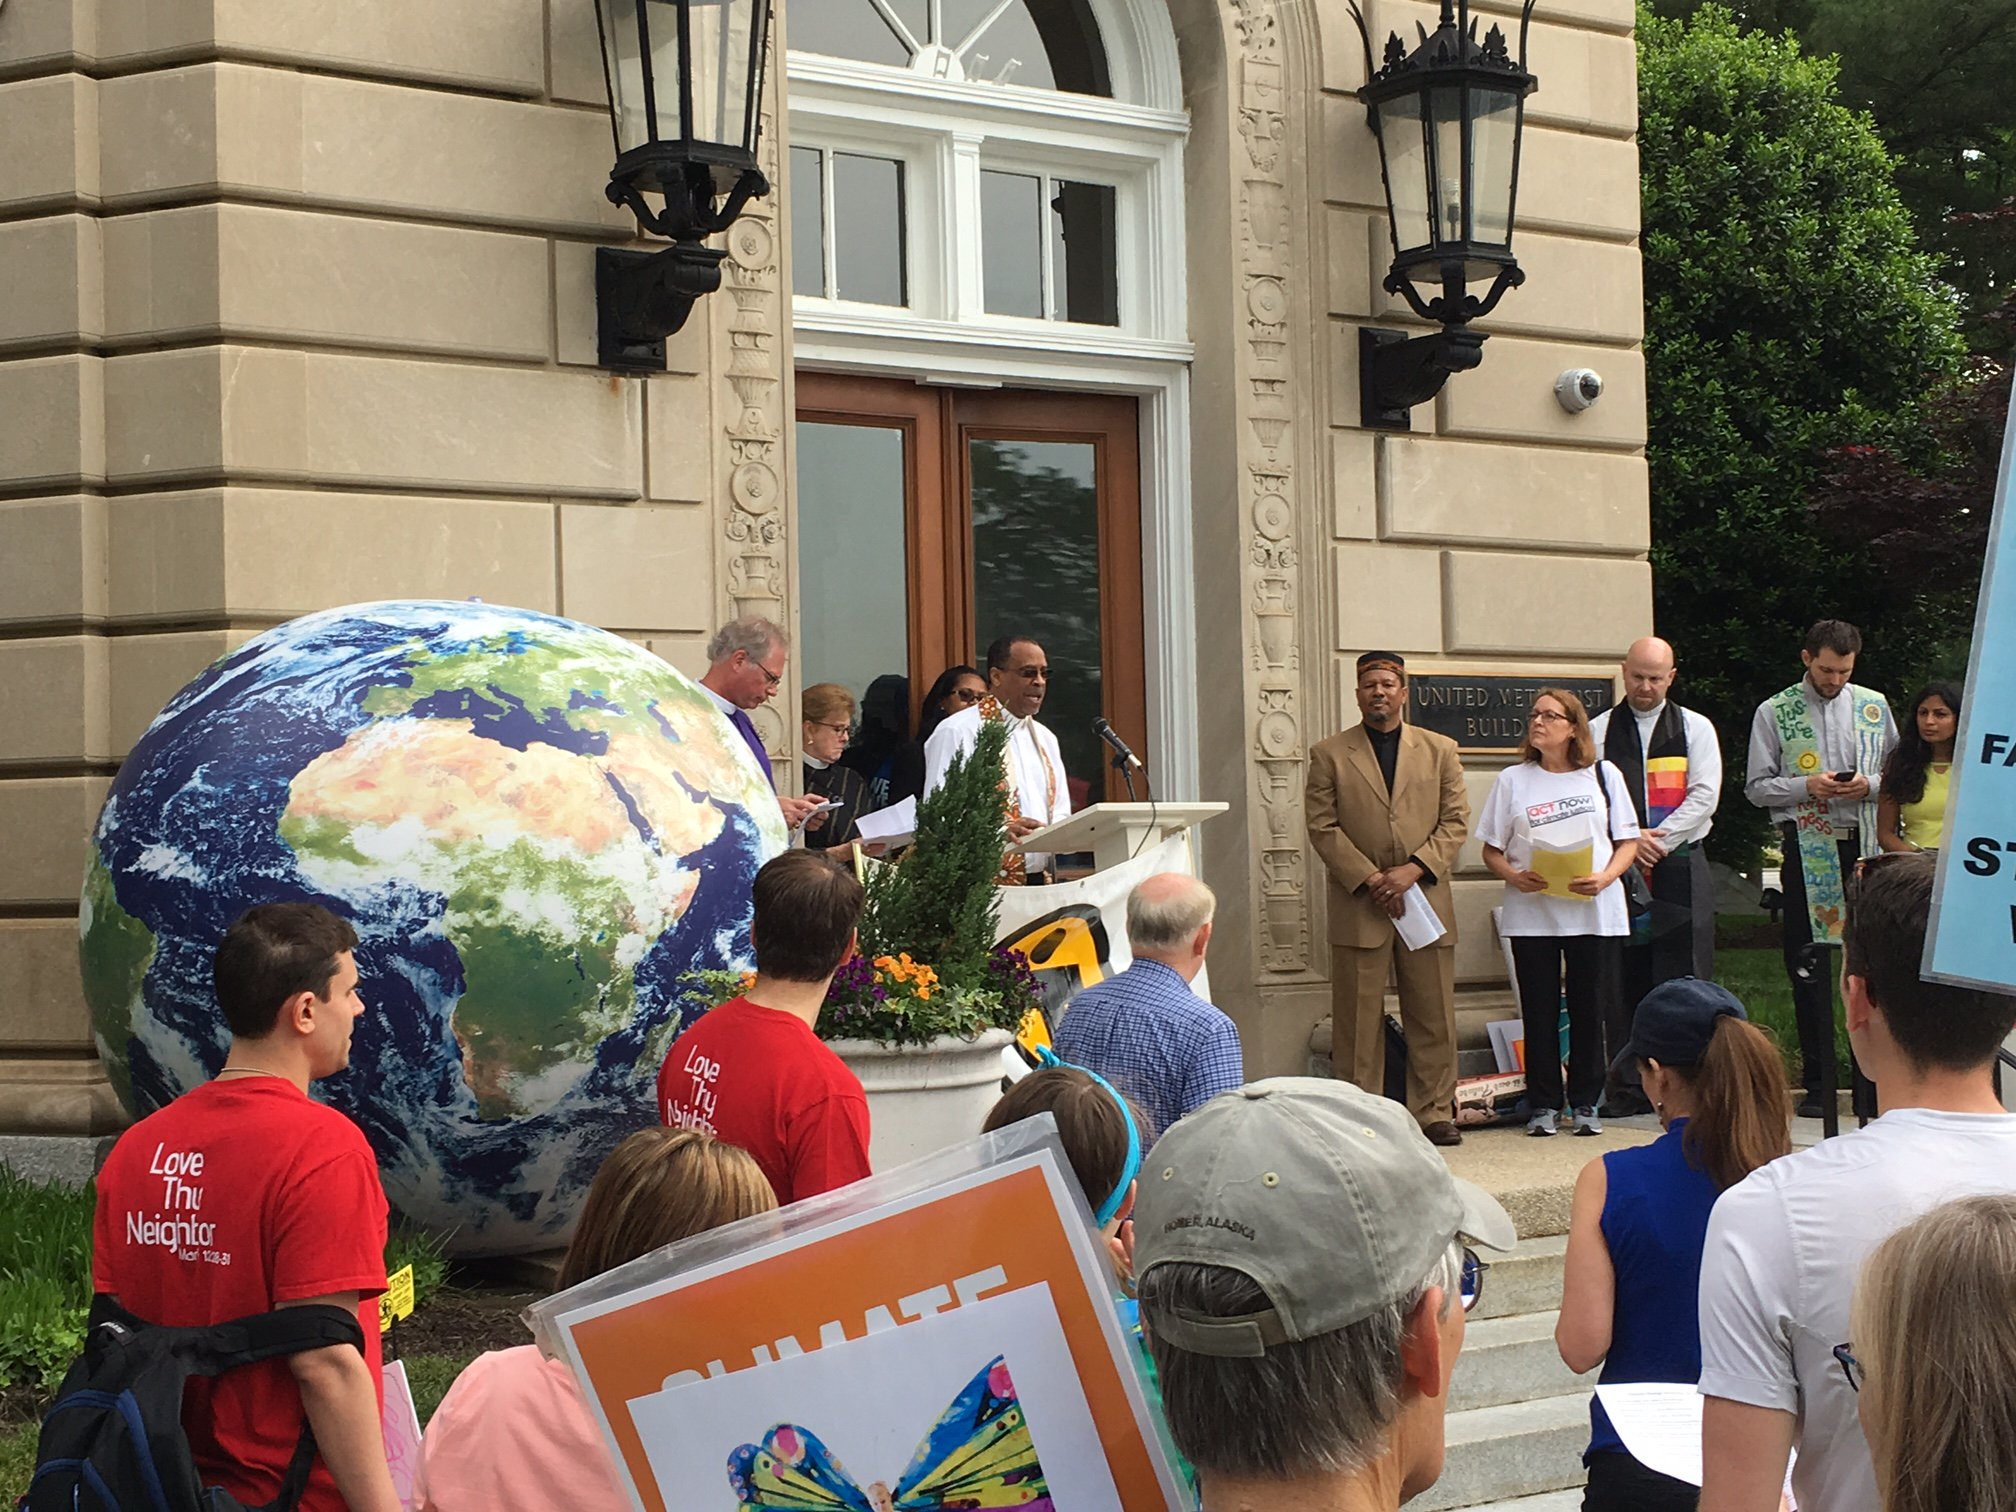 Terrific interfaith service this morning before the People's Climate March #KeepersofFaith #climatemarch https://t.co/WCRXpPbutk